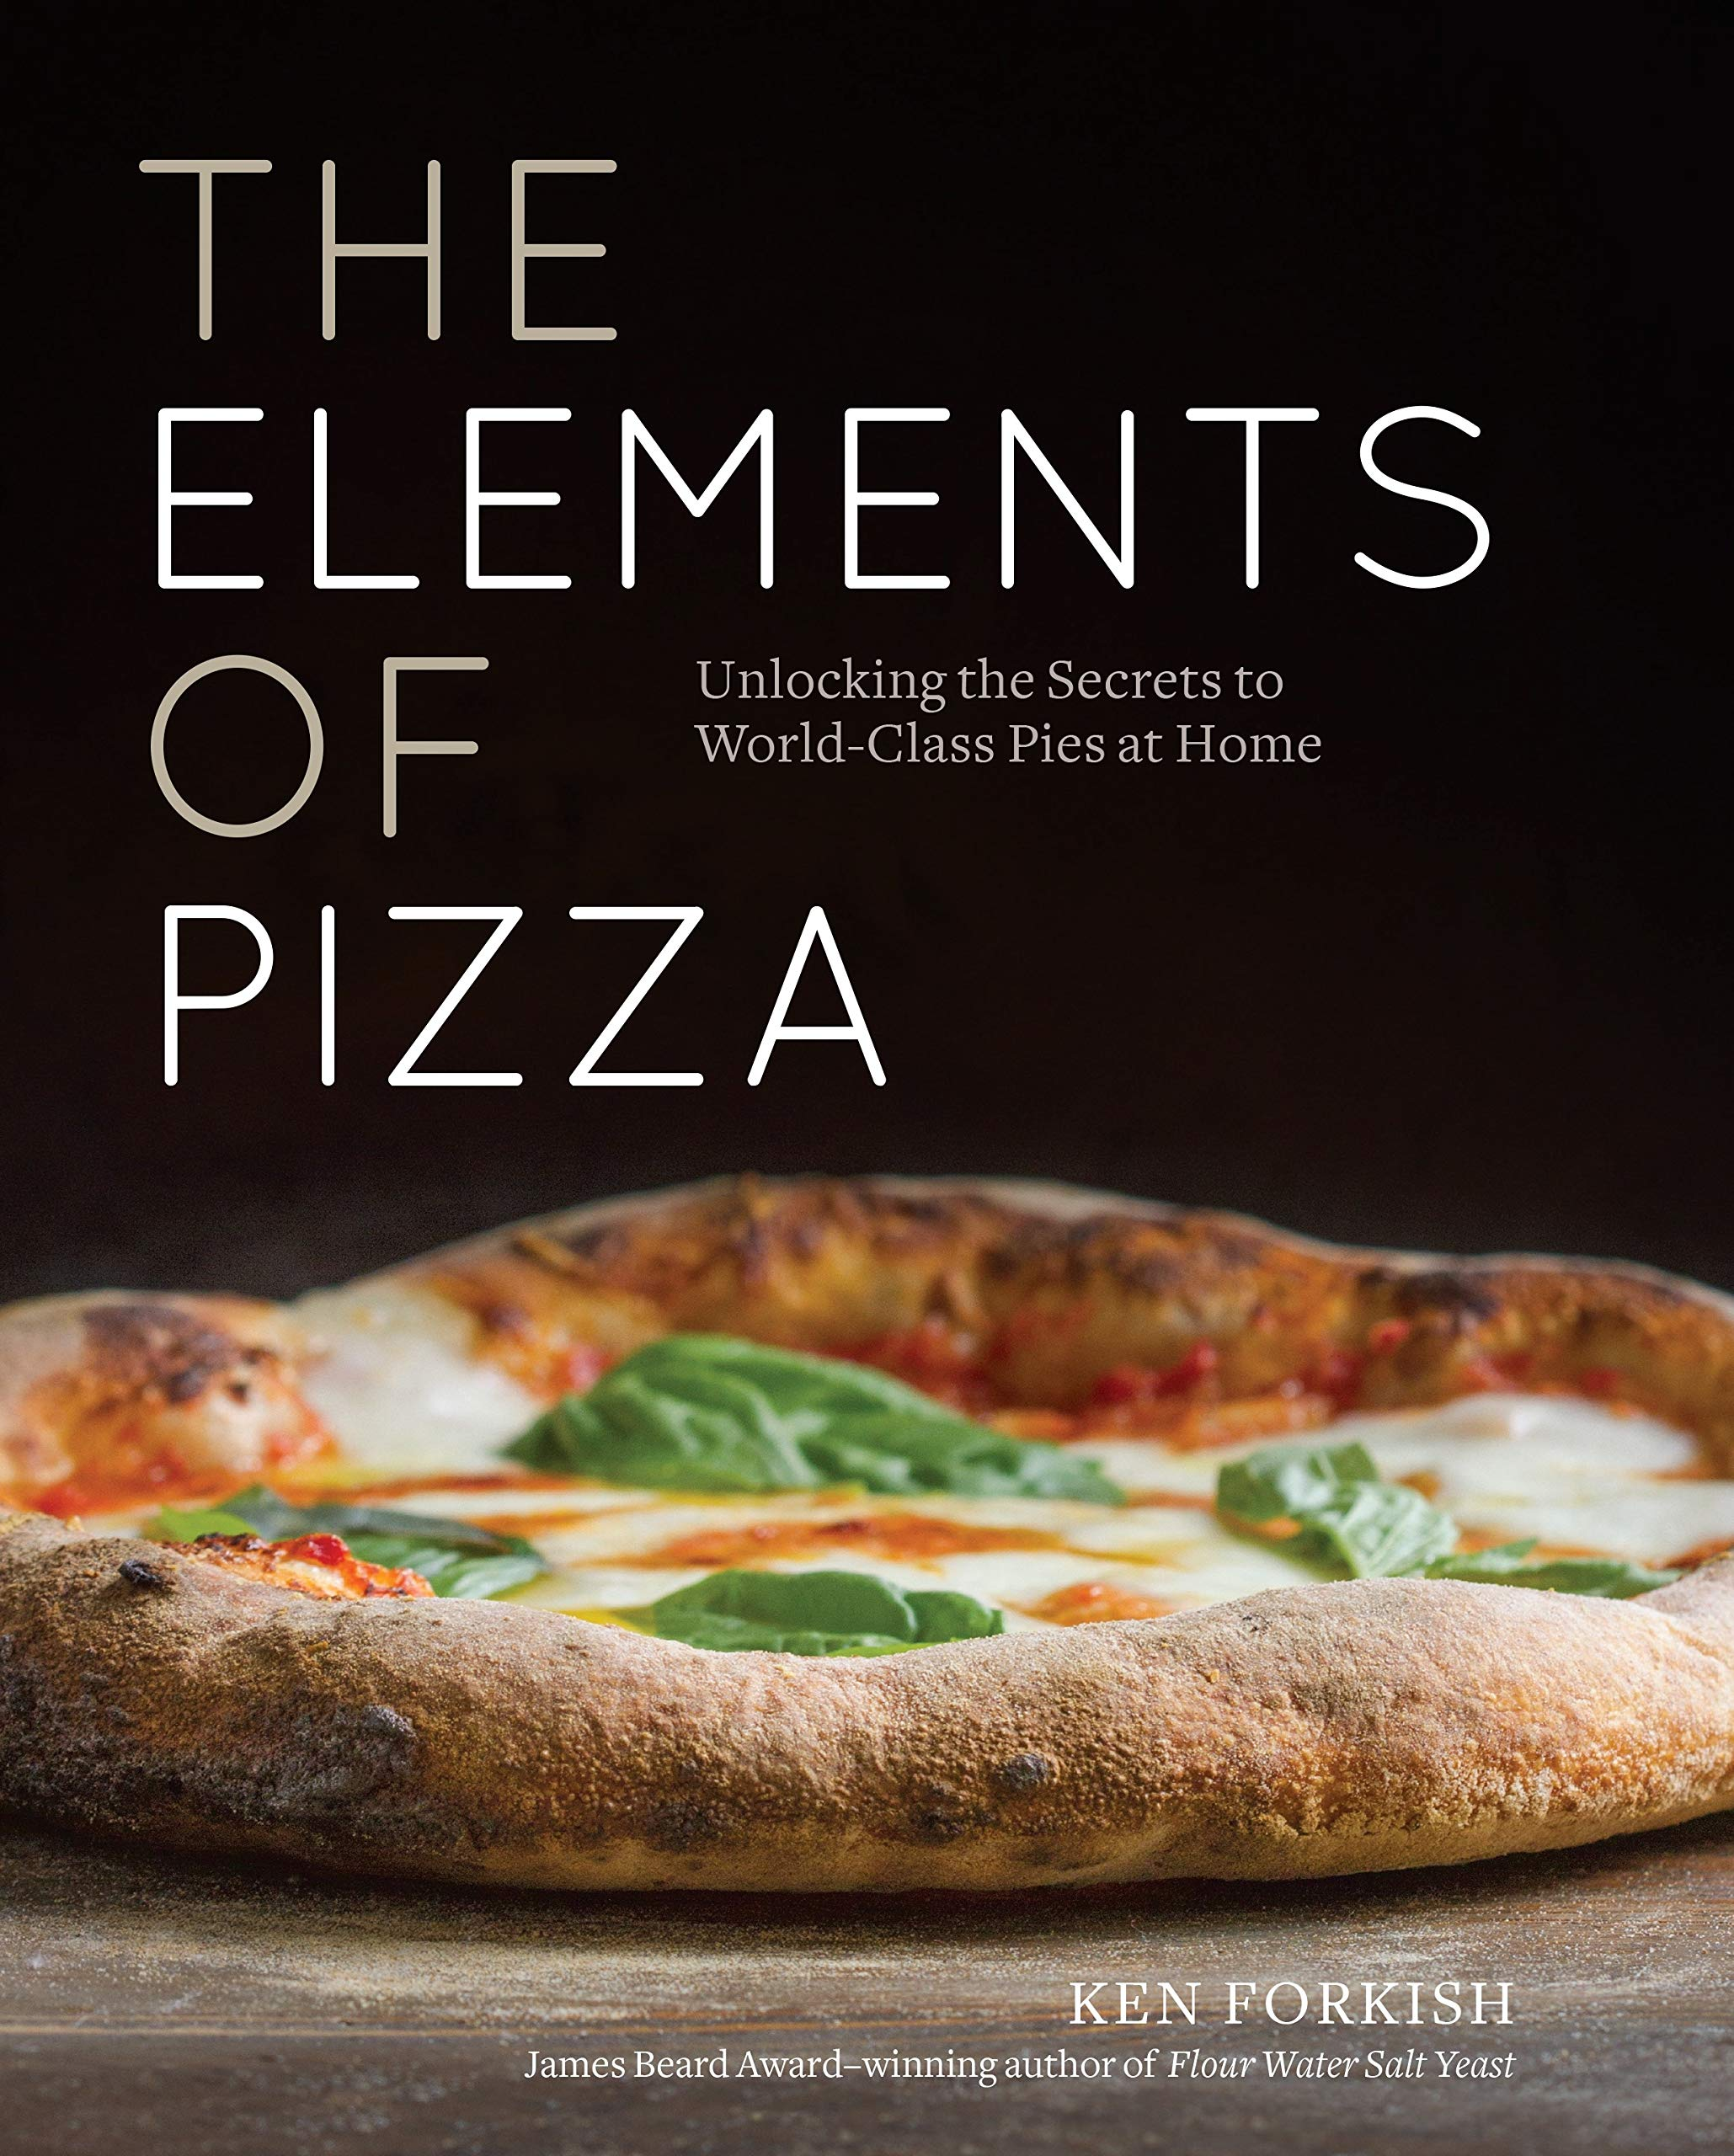 The Elements Of Pizza: Unlocking The Secrets To World-Class Pies At Home A Cookbook